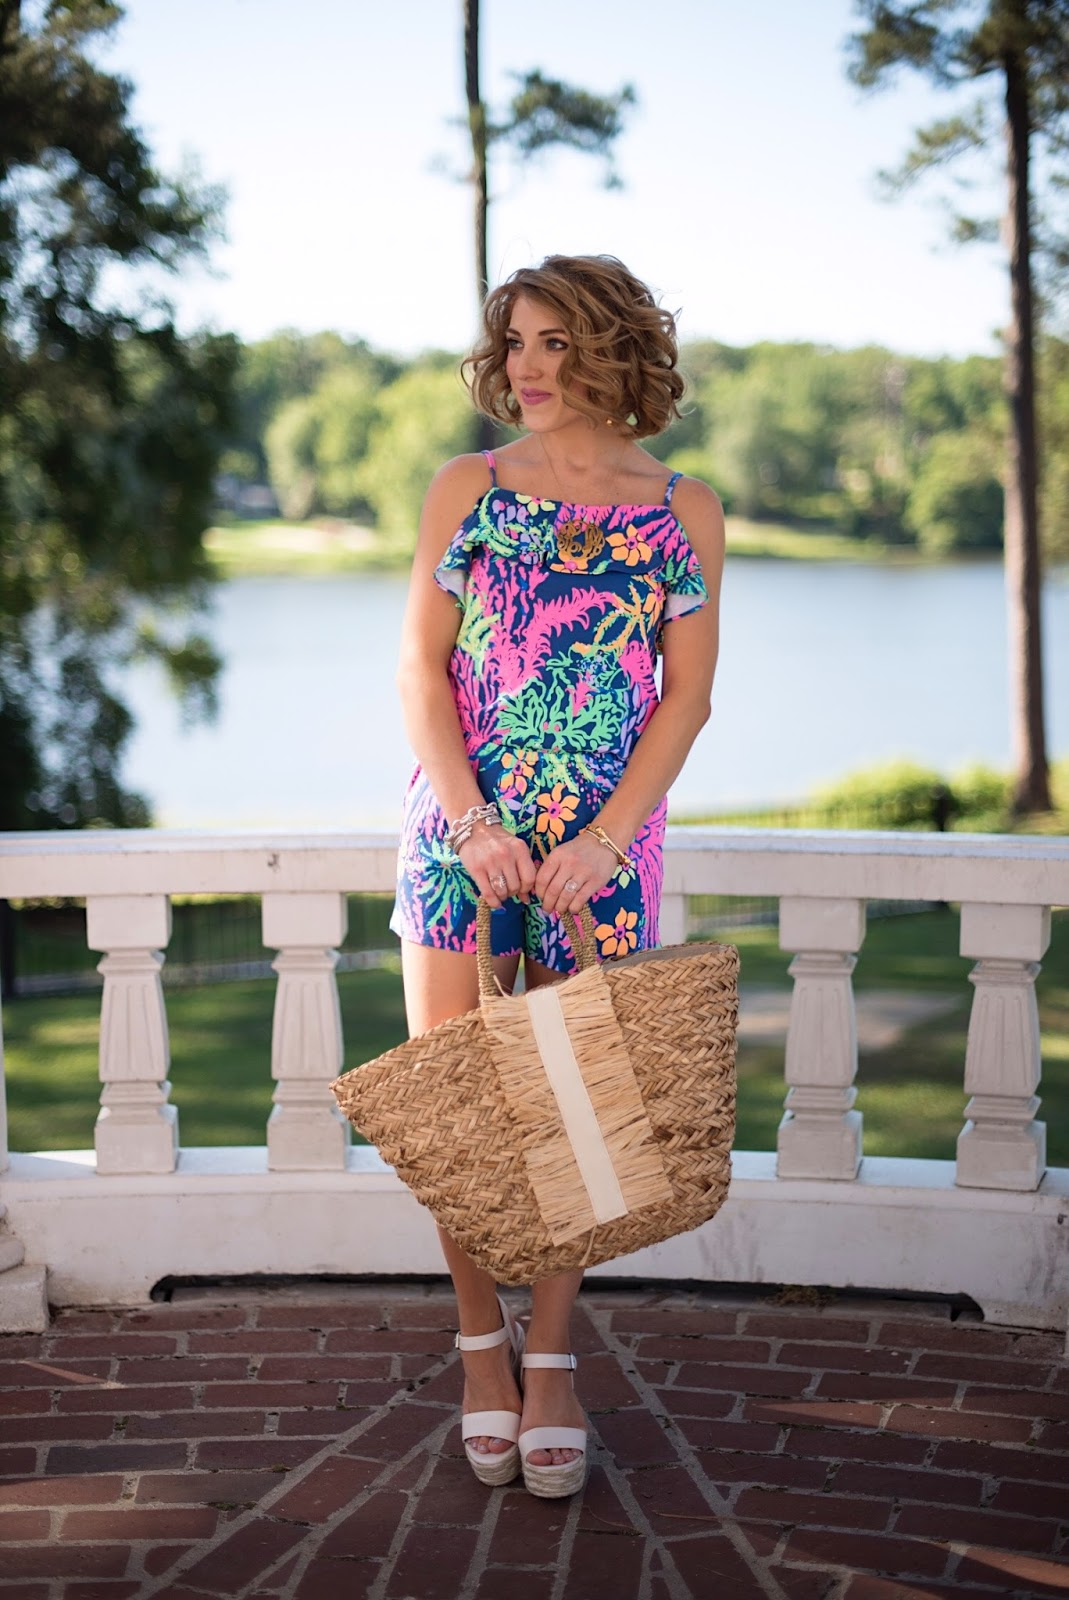 Lilly Pulitzer Klea Off The Shoulder Romper - Click through to see more on Something Delightful Blog!